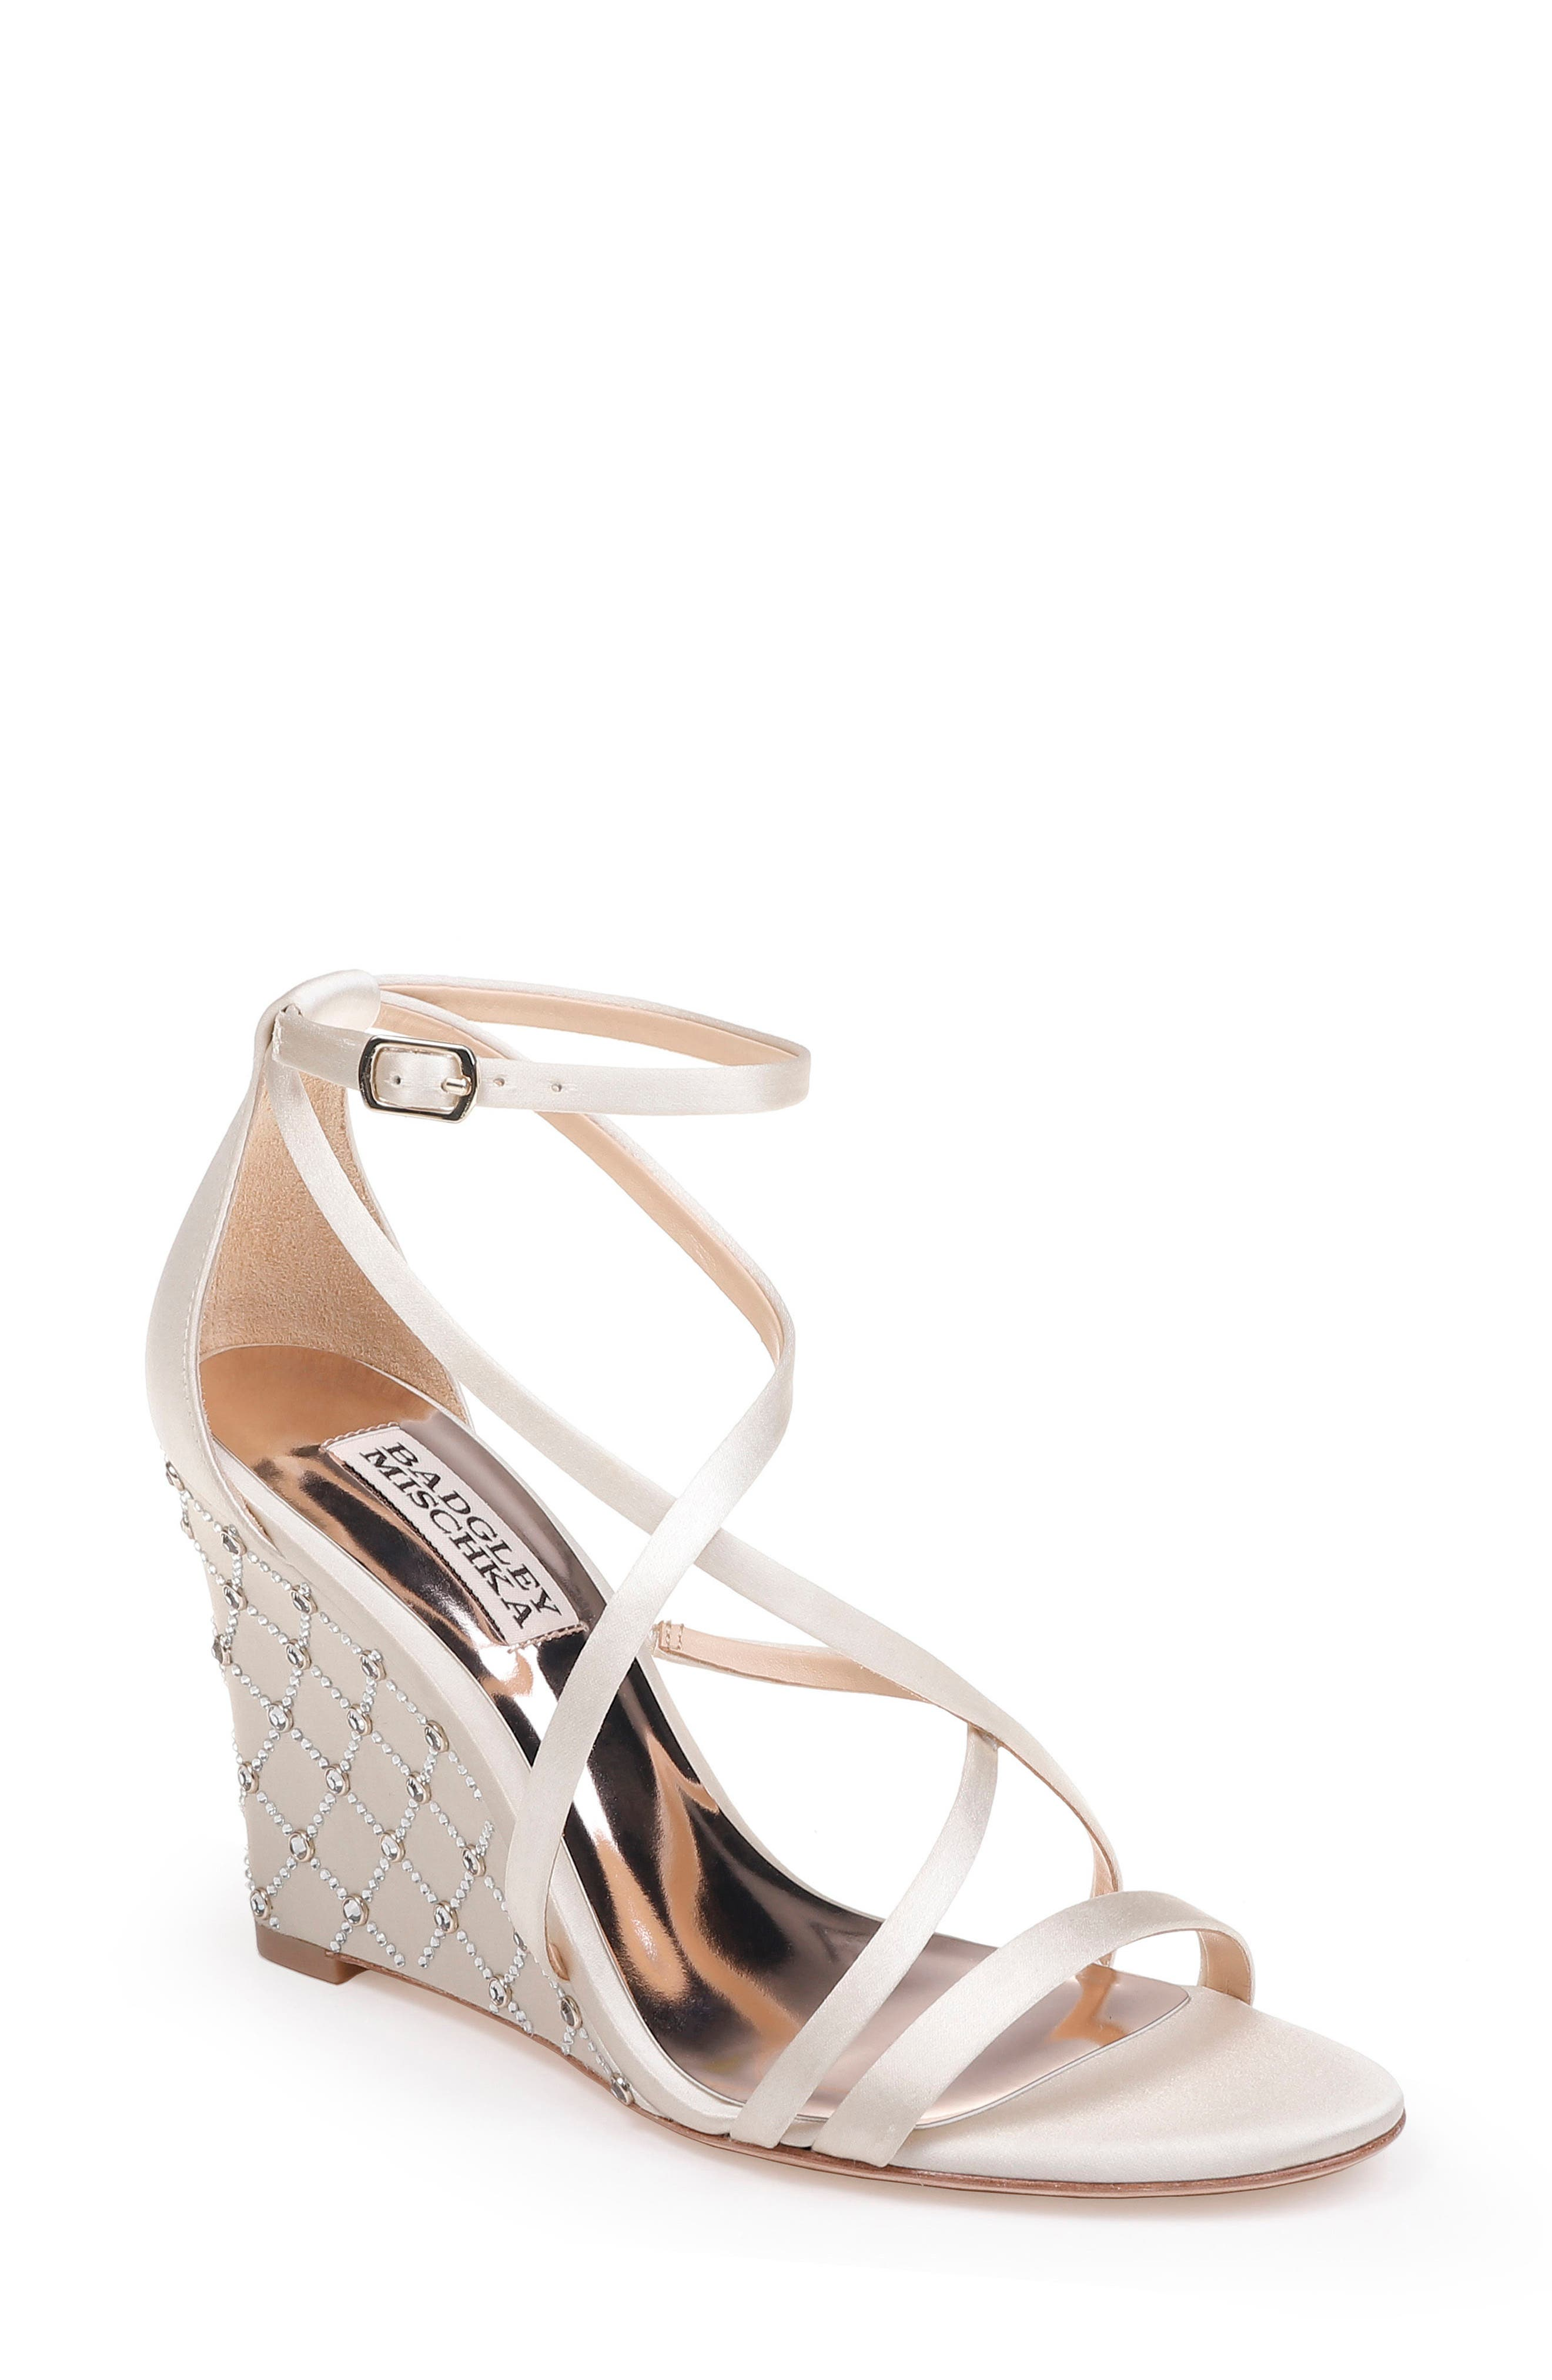 Shelly Strappy Wedge Sandal,                             Main thumbnail 1, color,                             Ivory Satin